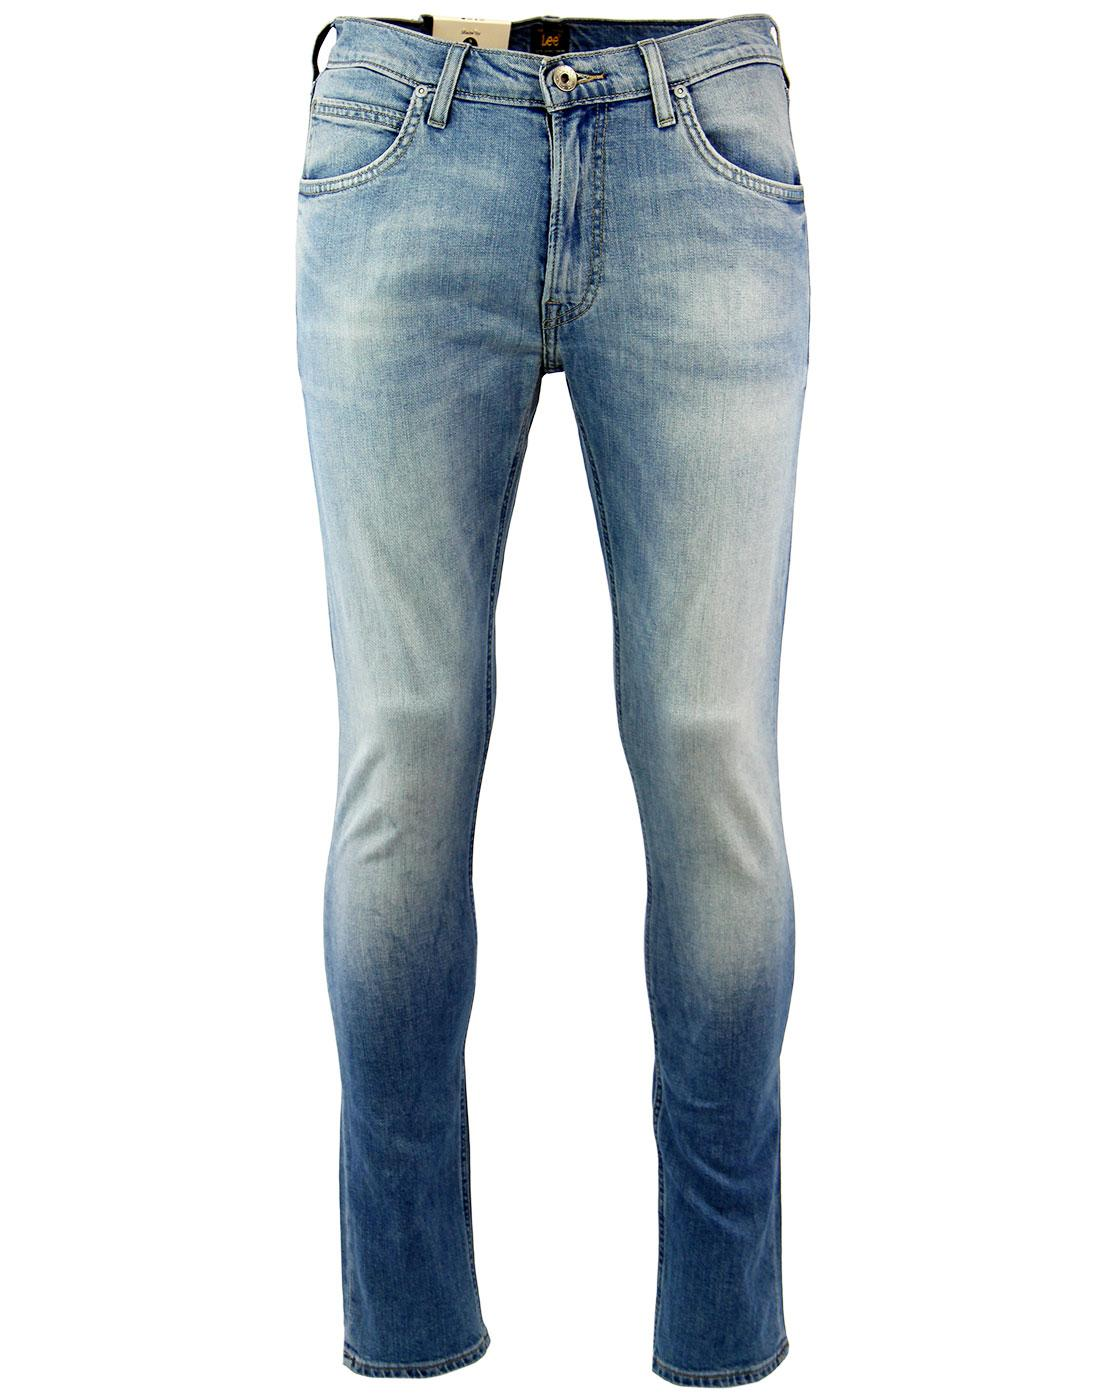 Luke LEE Slim Tapered Retro Beach Blue Denim Jeans